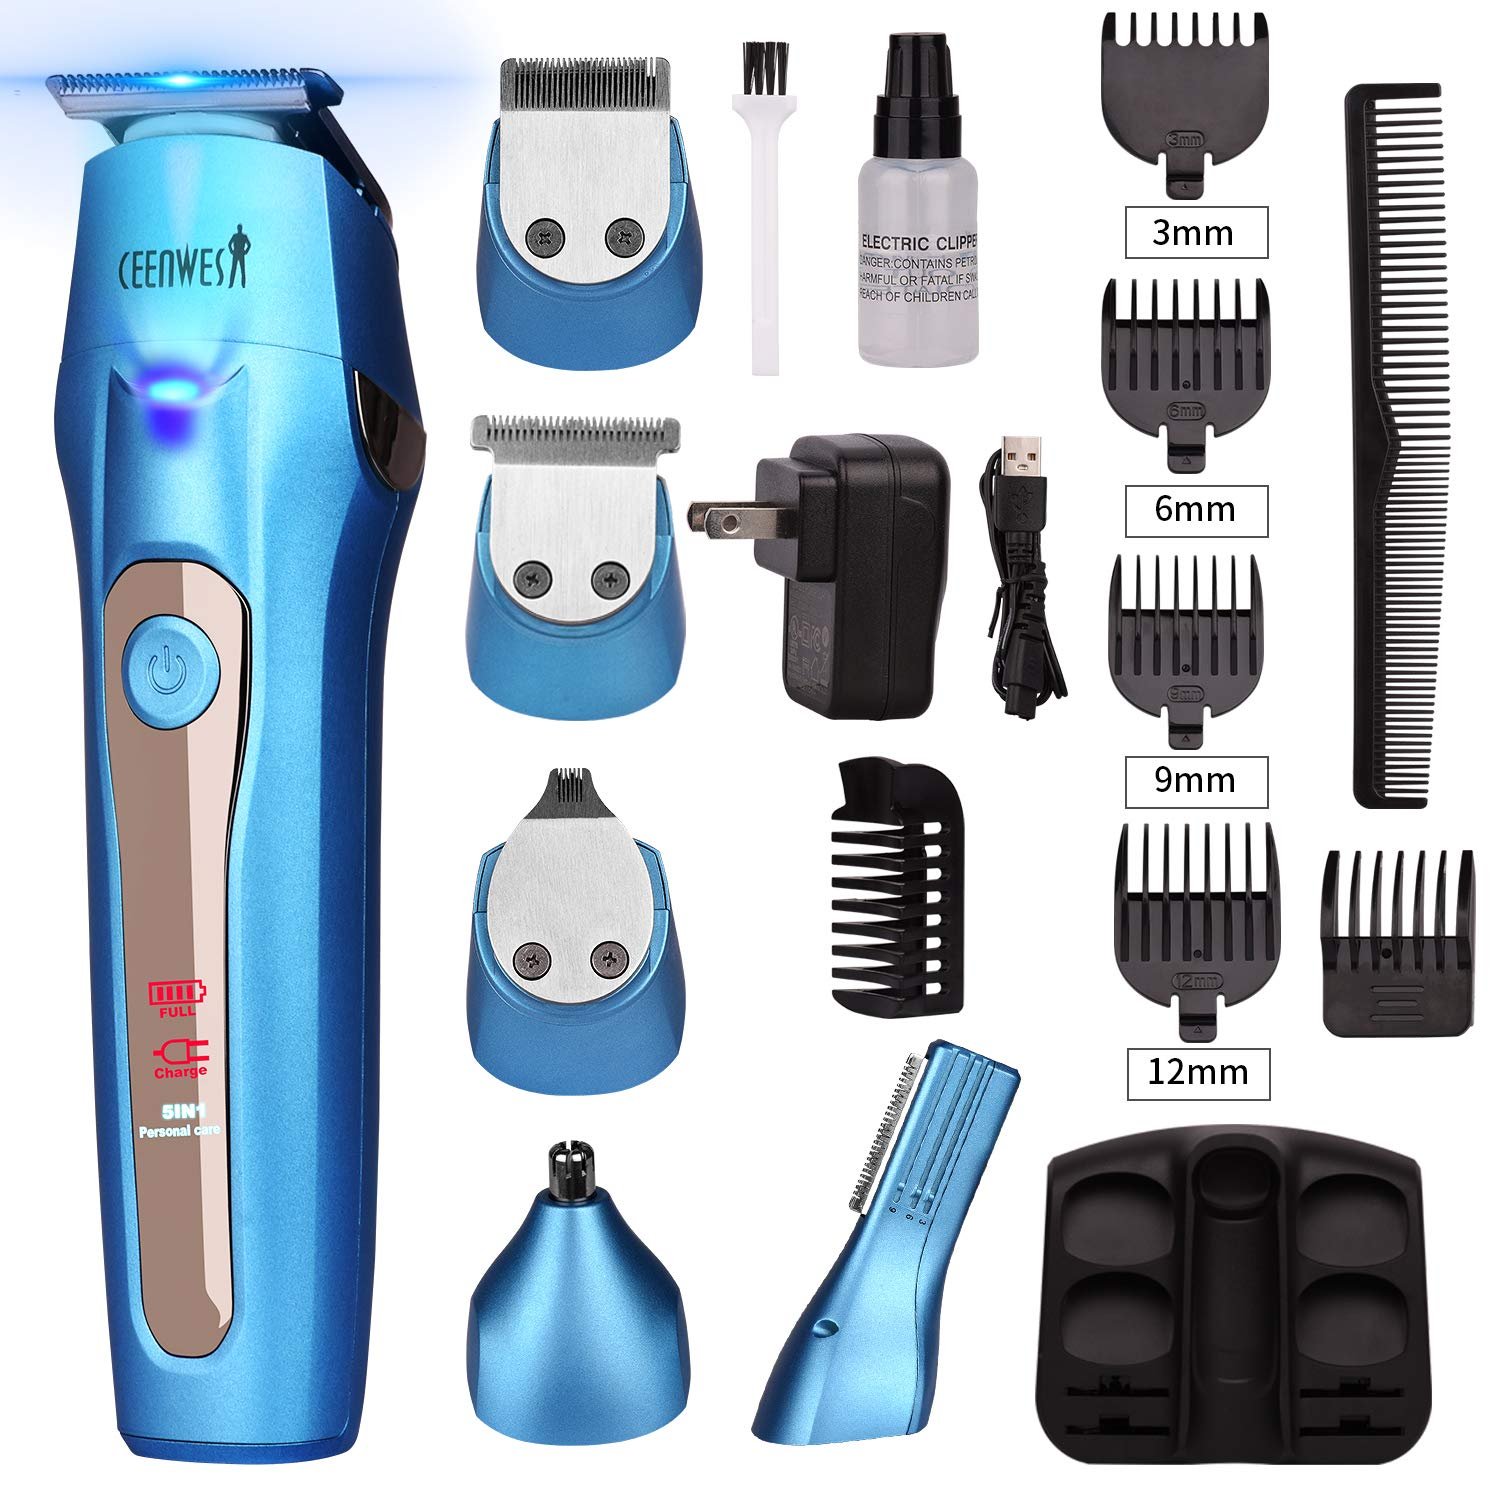 Ceenwes 5 In 1 Mens Grooming Kit Professional Beard Trimmer Rechargeable Hair Clippers Multi-purpose Mustache Trimmer Waterproof Nose& Ear Body Trimmer For Men Father Husband Boyfriend by Ceenwes